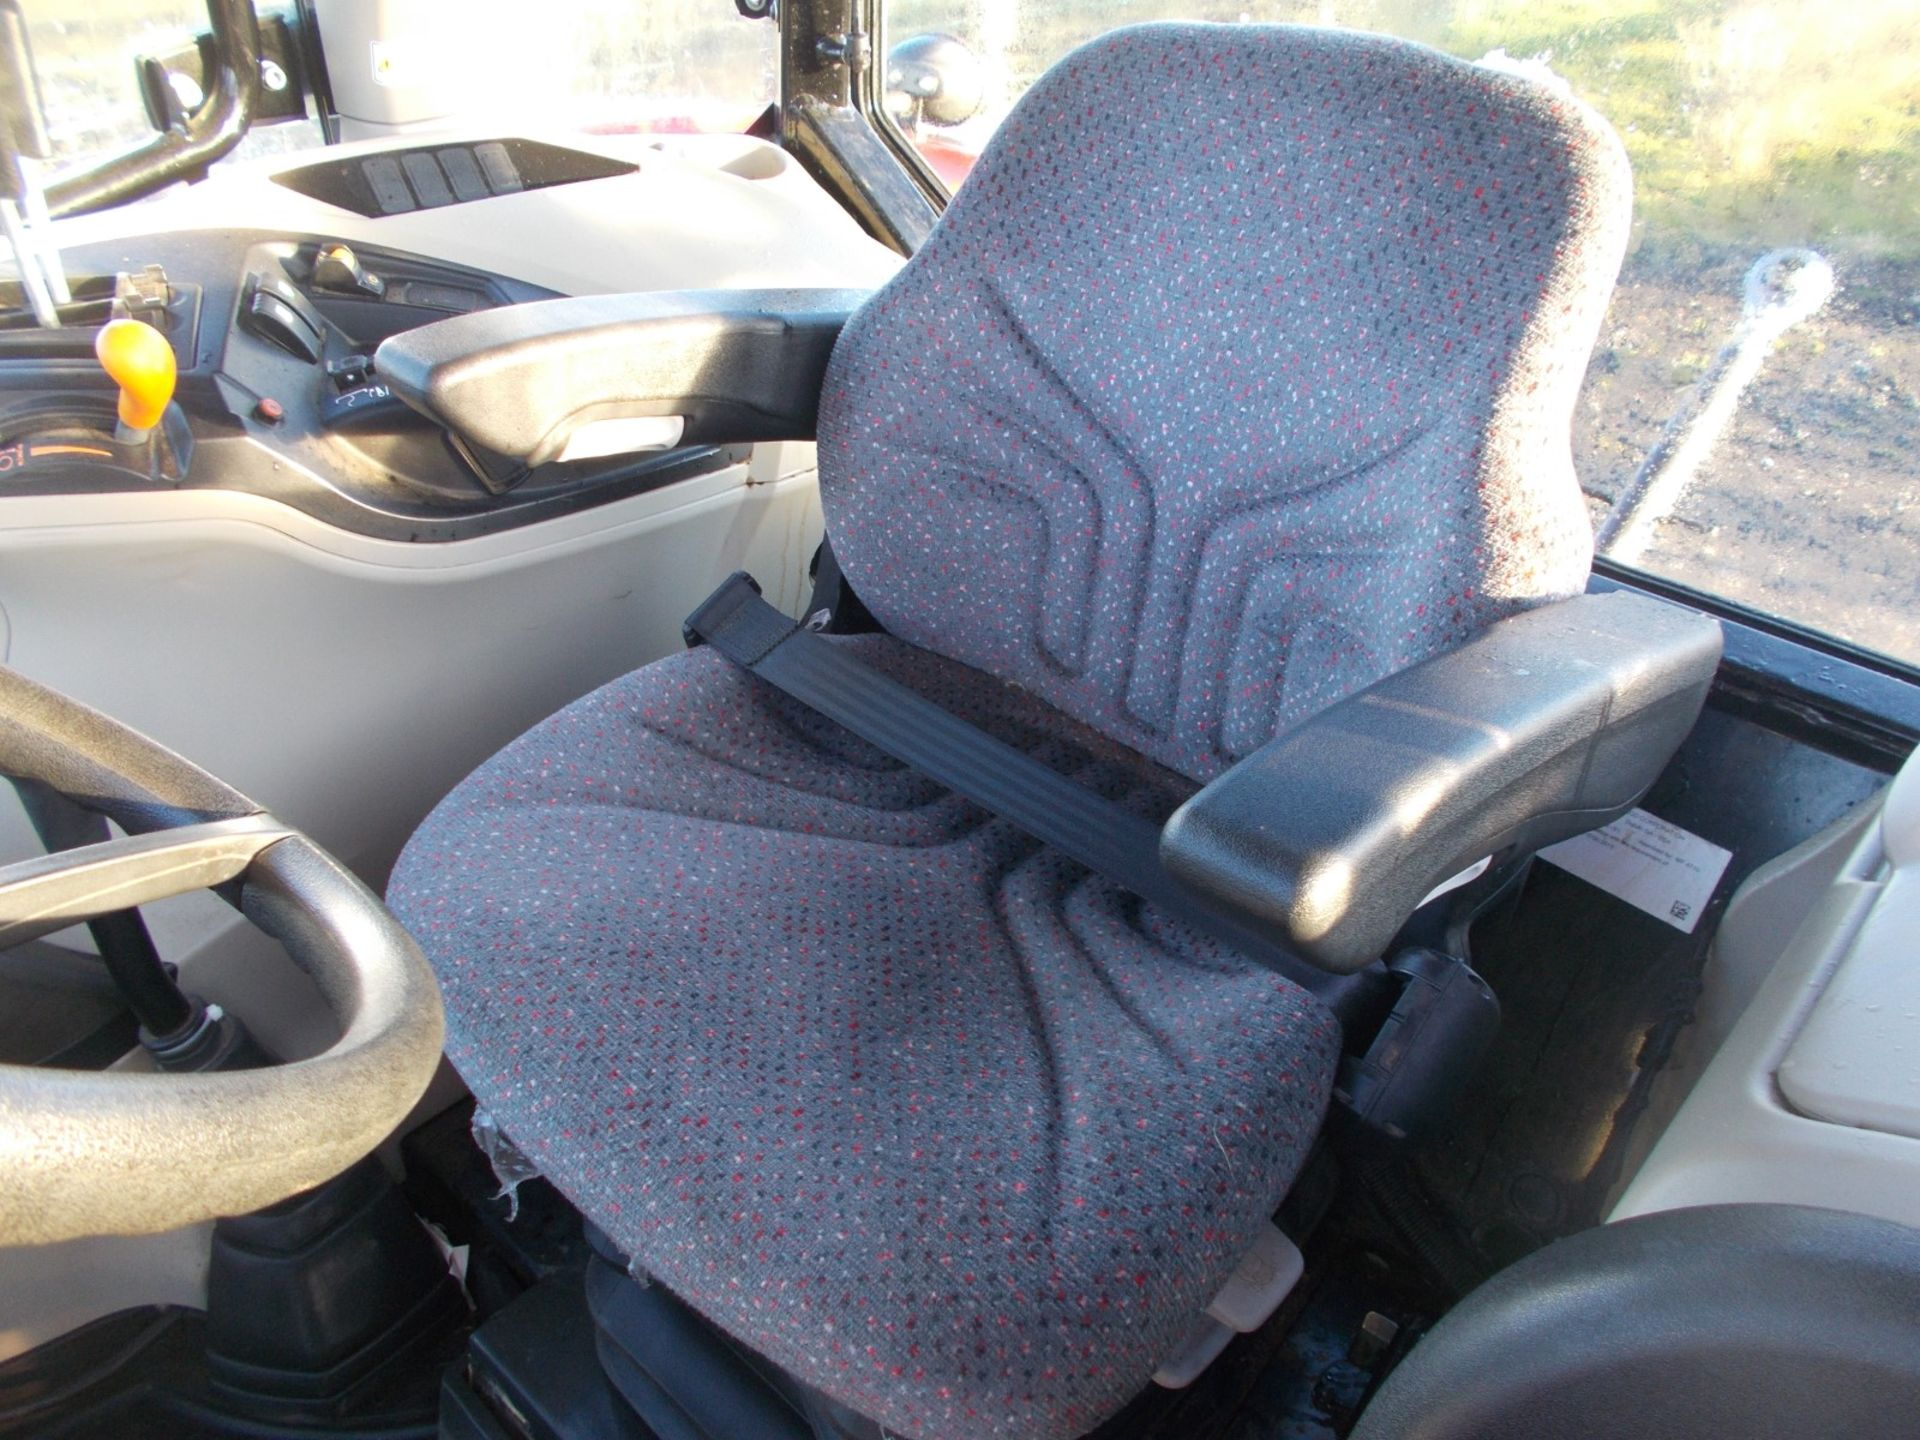 2018 MASSEY FERGUSON 4710 4WD TRACTOR WITH LOADER, AGCO 3.3 LITRE 3CYL TURBO DIESEL *PLUS VAT* - Image 10 of 21